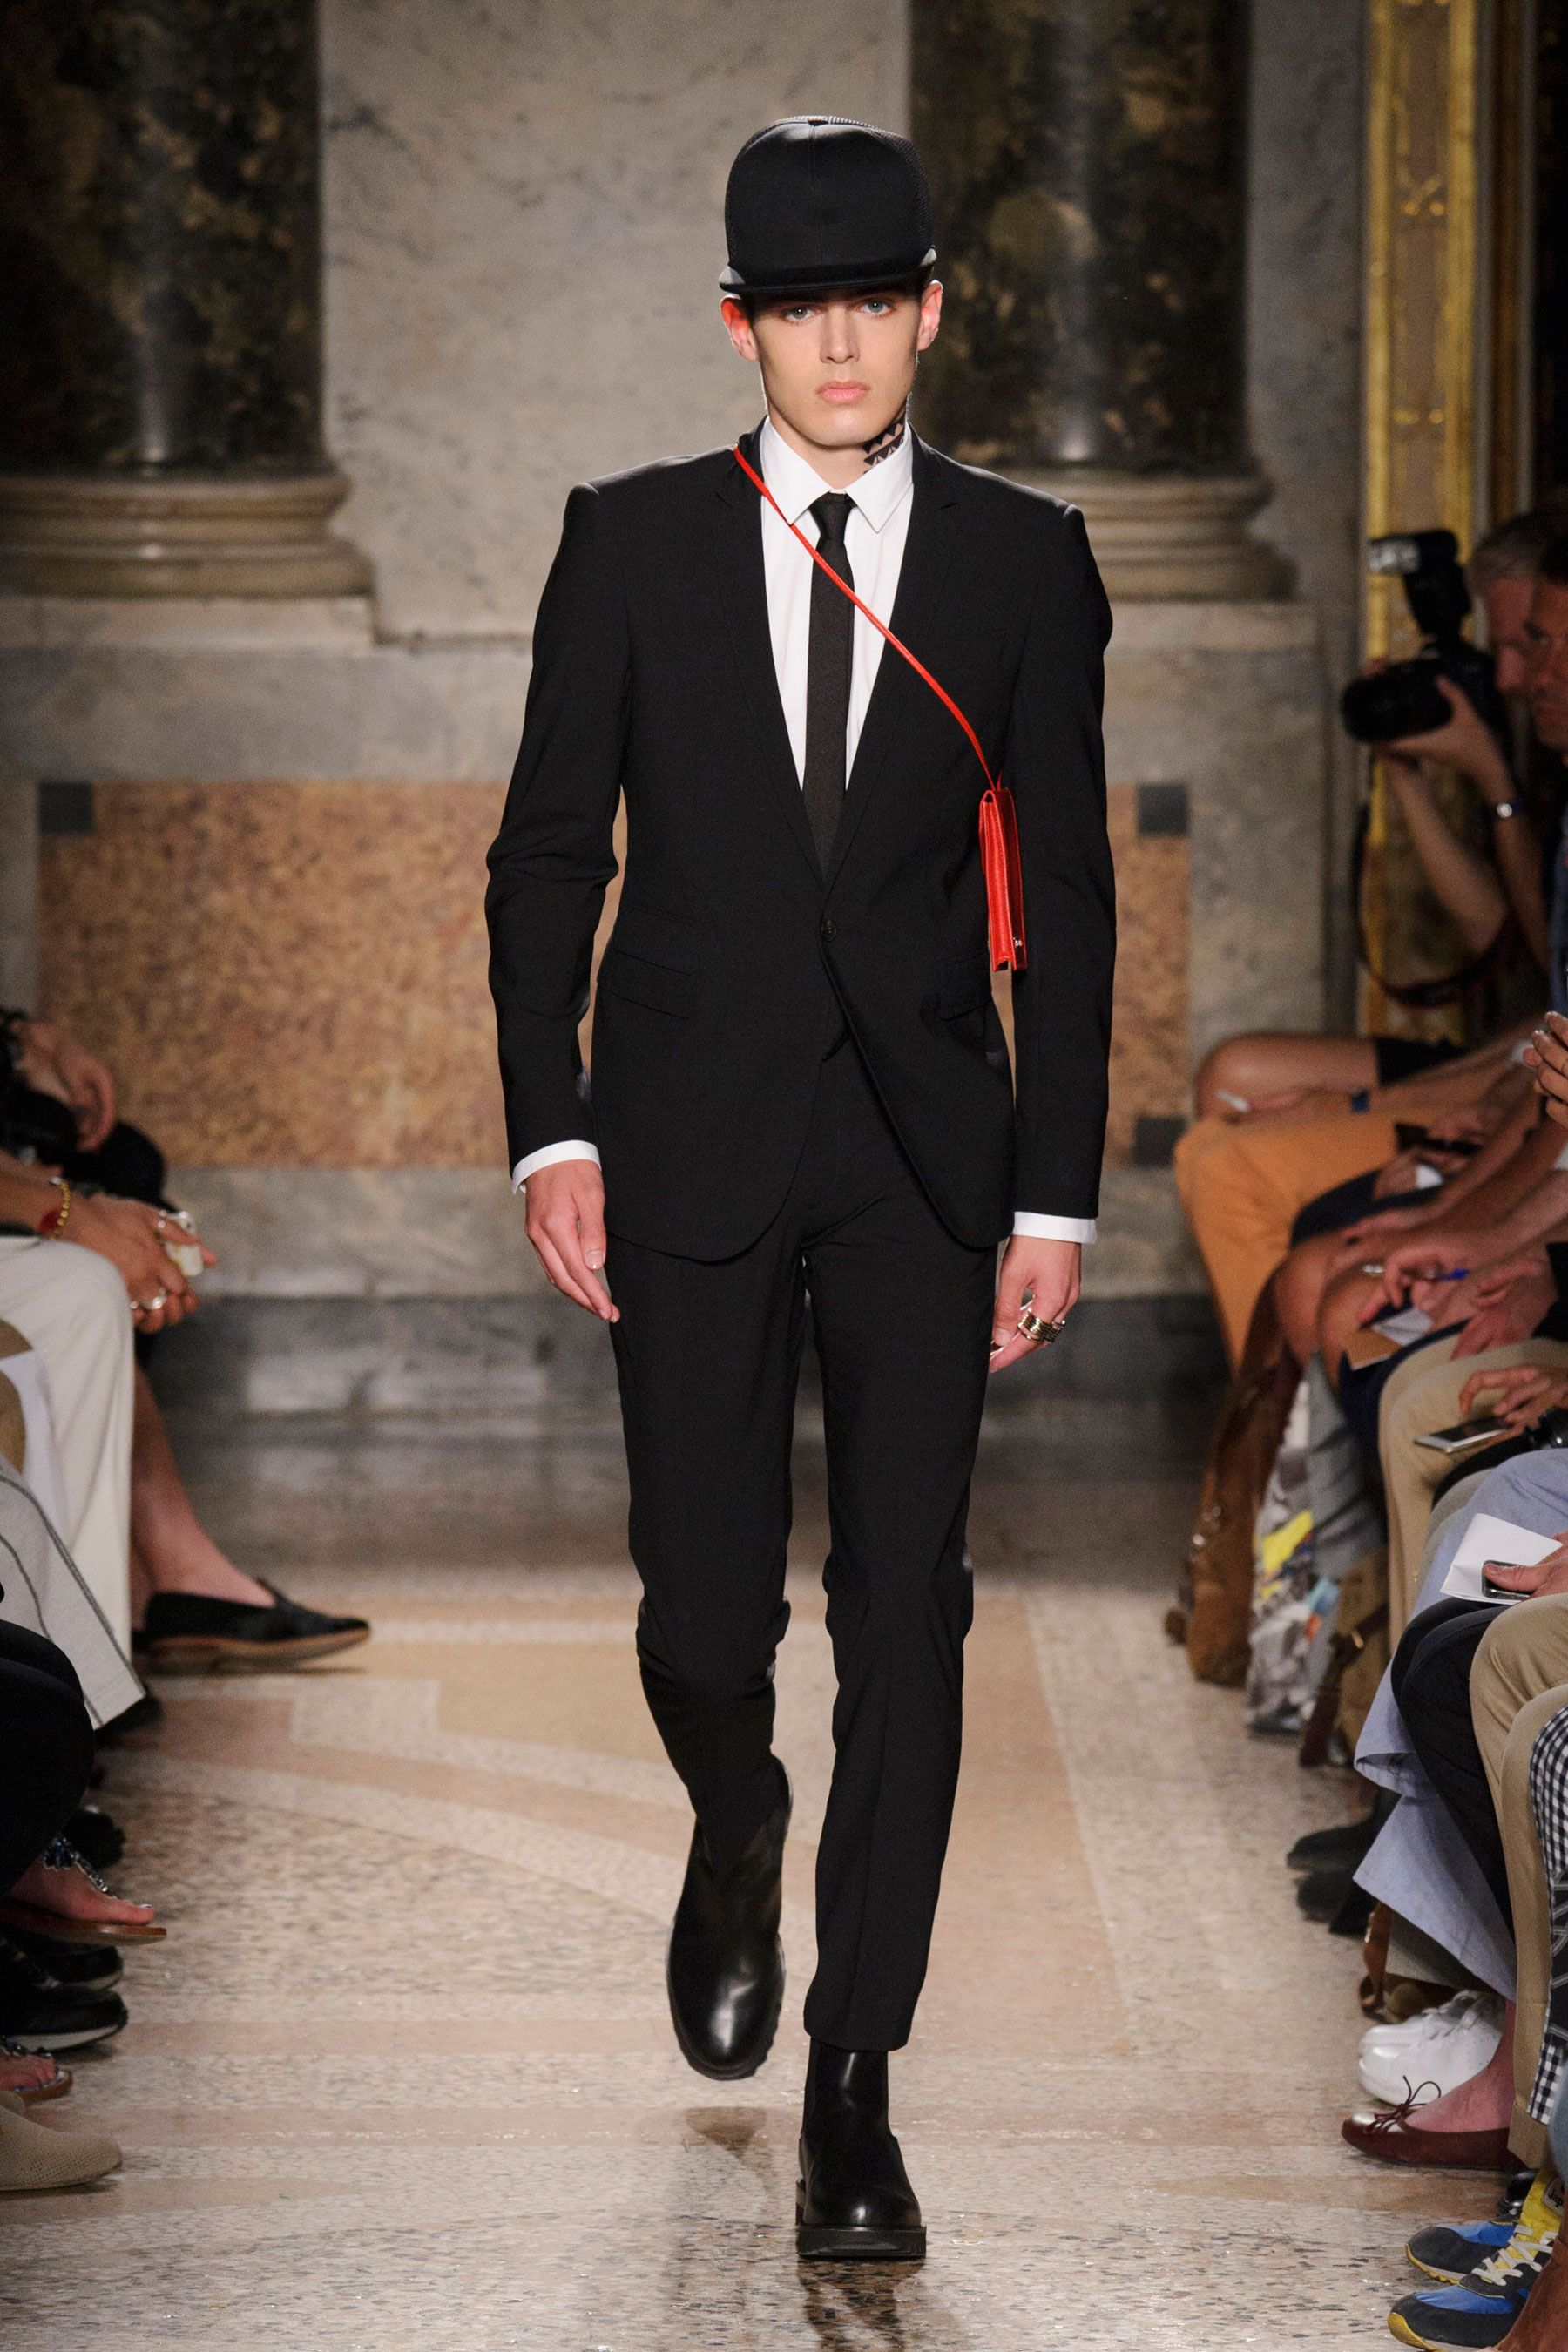 Les Hommes Spring Summer 2016 Primavera Verano Collection - #Menswear #Trends #Tendencias #Moda Hombre Milan Fashion Week - D.P.